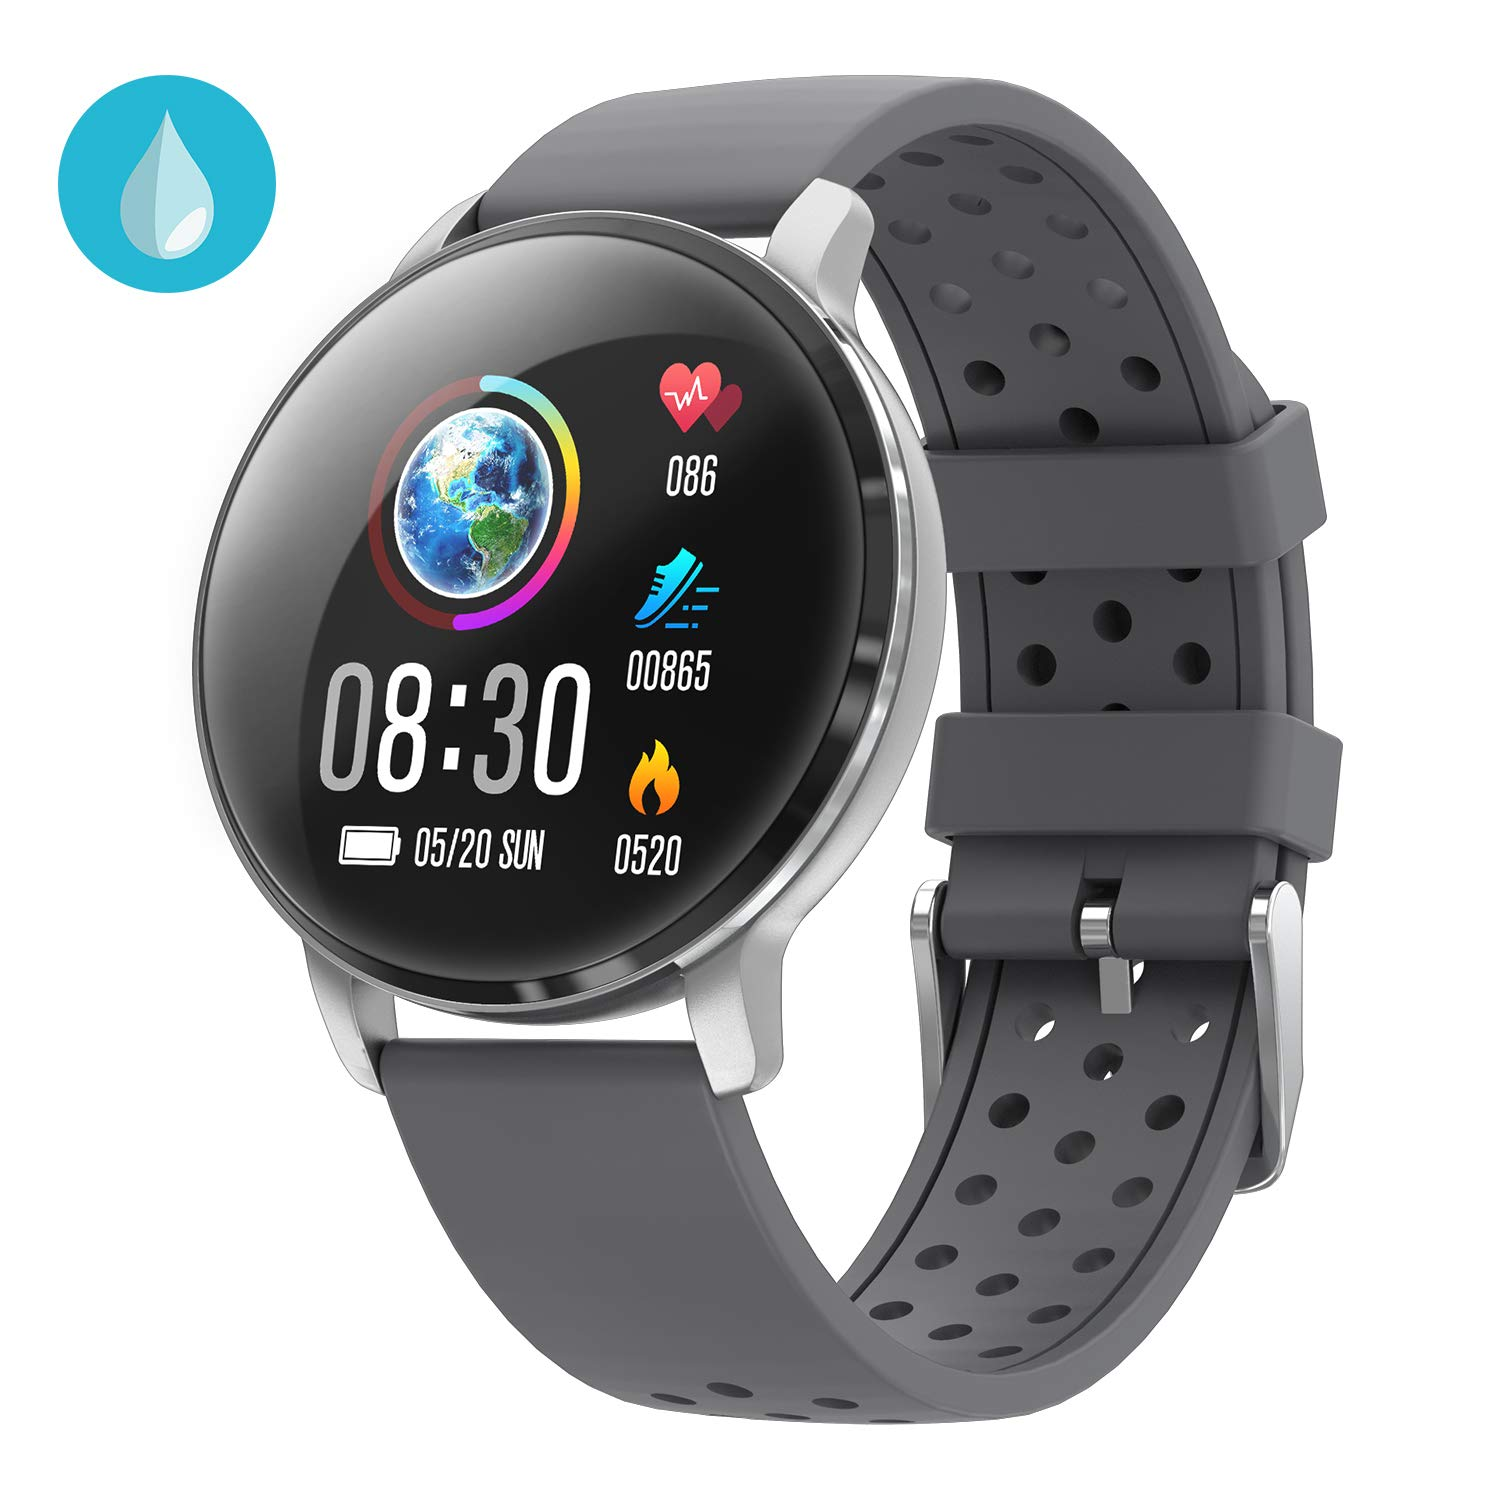 Fitness Activity Tracker CatShin CS06 Fitness Tracker Watch Band with Heart Rate Blood Preasure Sleep Monitor Fitness Watch IP68 Waterproof Calorie Counter Pedometer Message Reminder for Android IOS